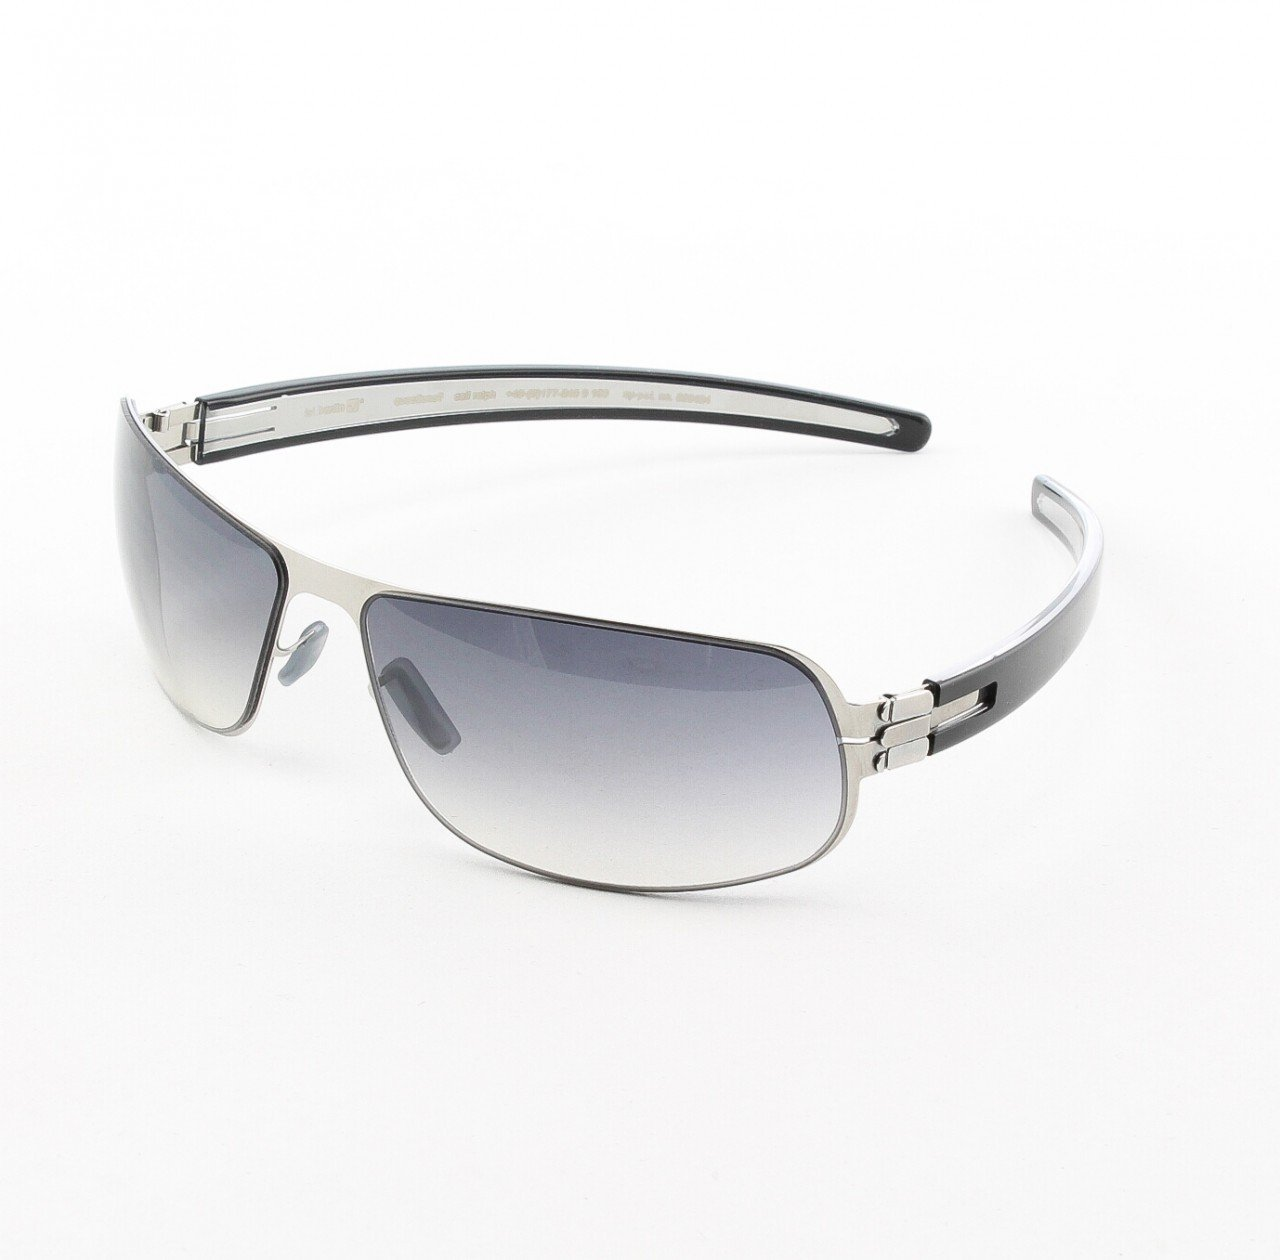 ic! Berlin I See 2003 Sunglasses Col. Chrome/Black with Black Gradient Lenses